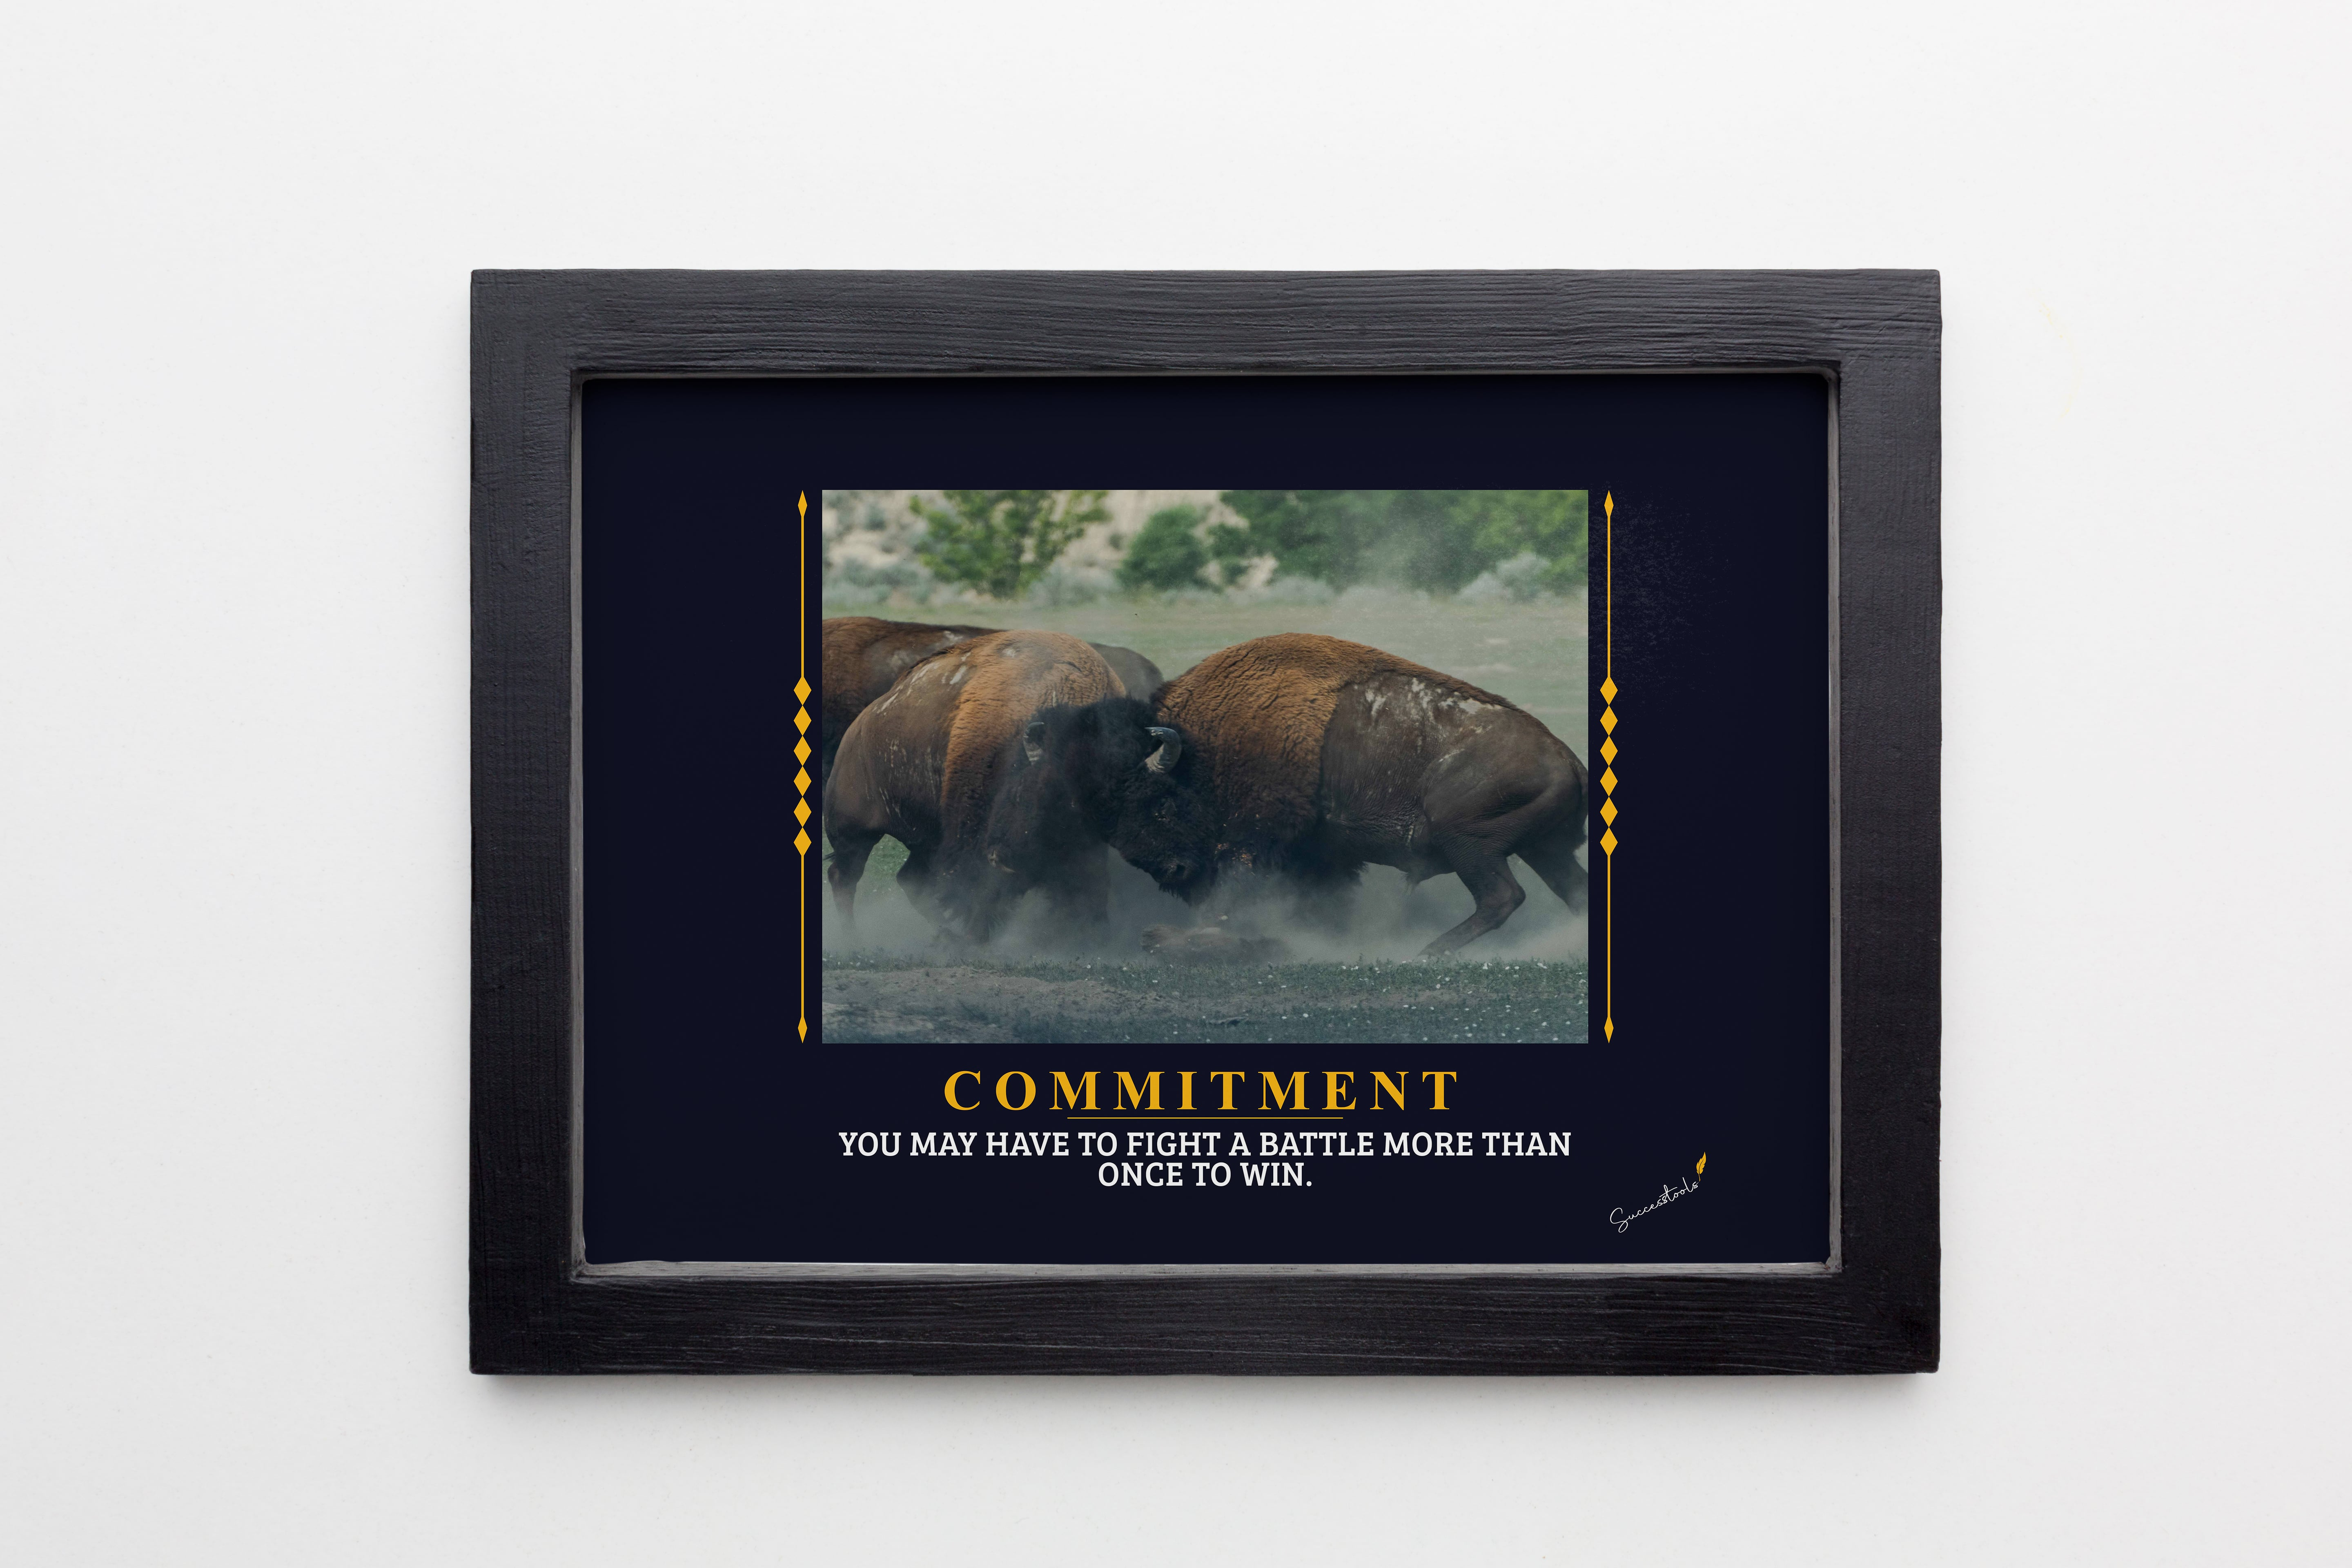 Charging Buffalo Commitment Framed Poster